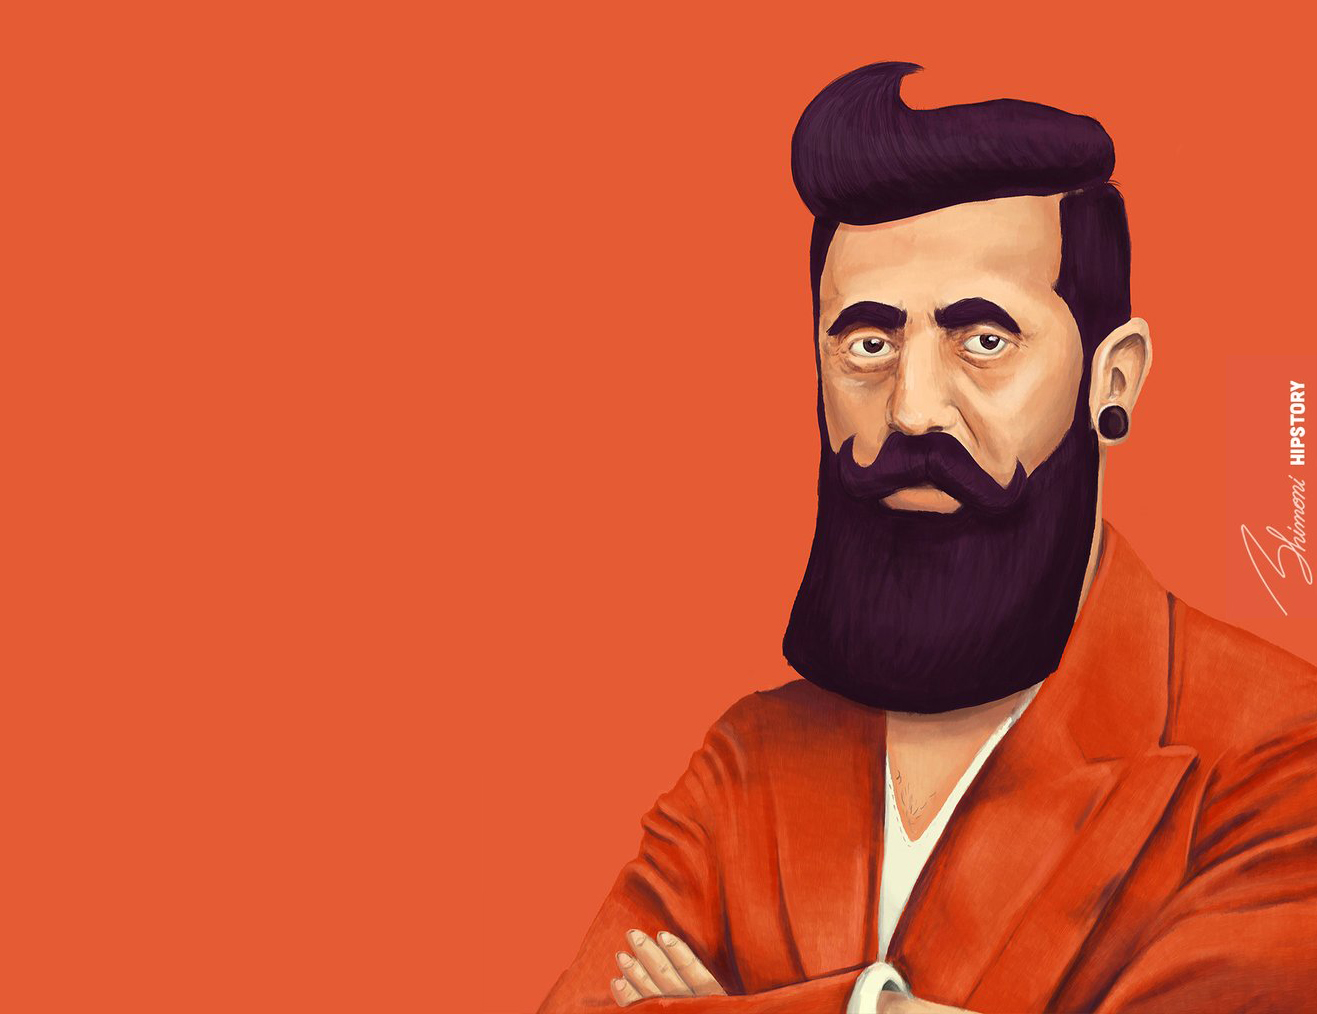 """""""Hipster Herzl,"""" part of Israeli artist Amit Shimoni's Hipstory series, reimagines the legendary Zionist leader and his iconic beard."""